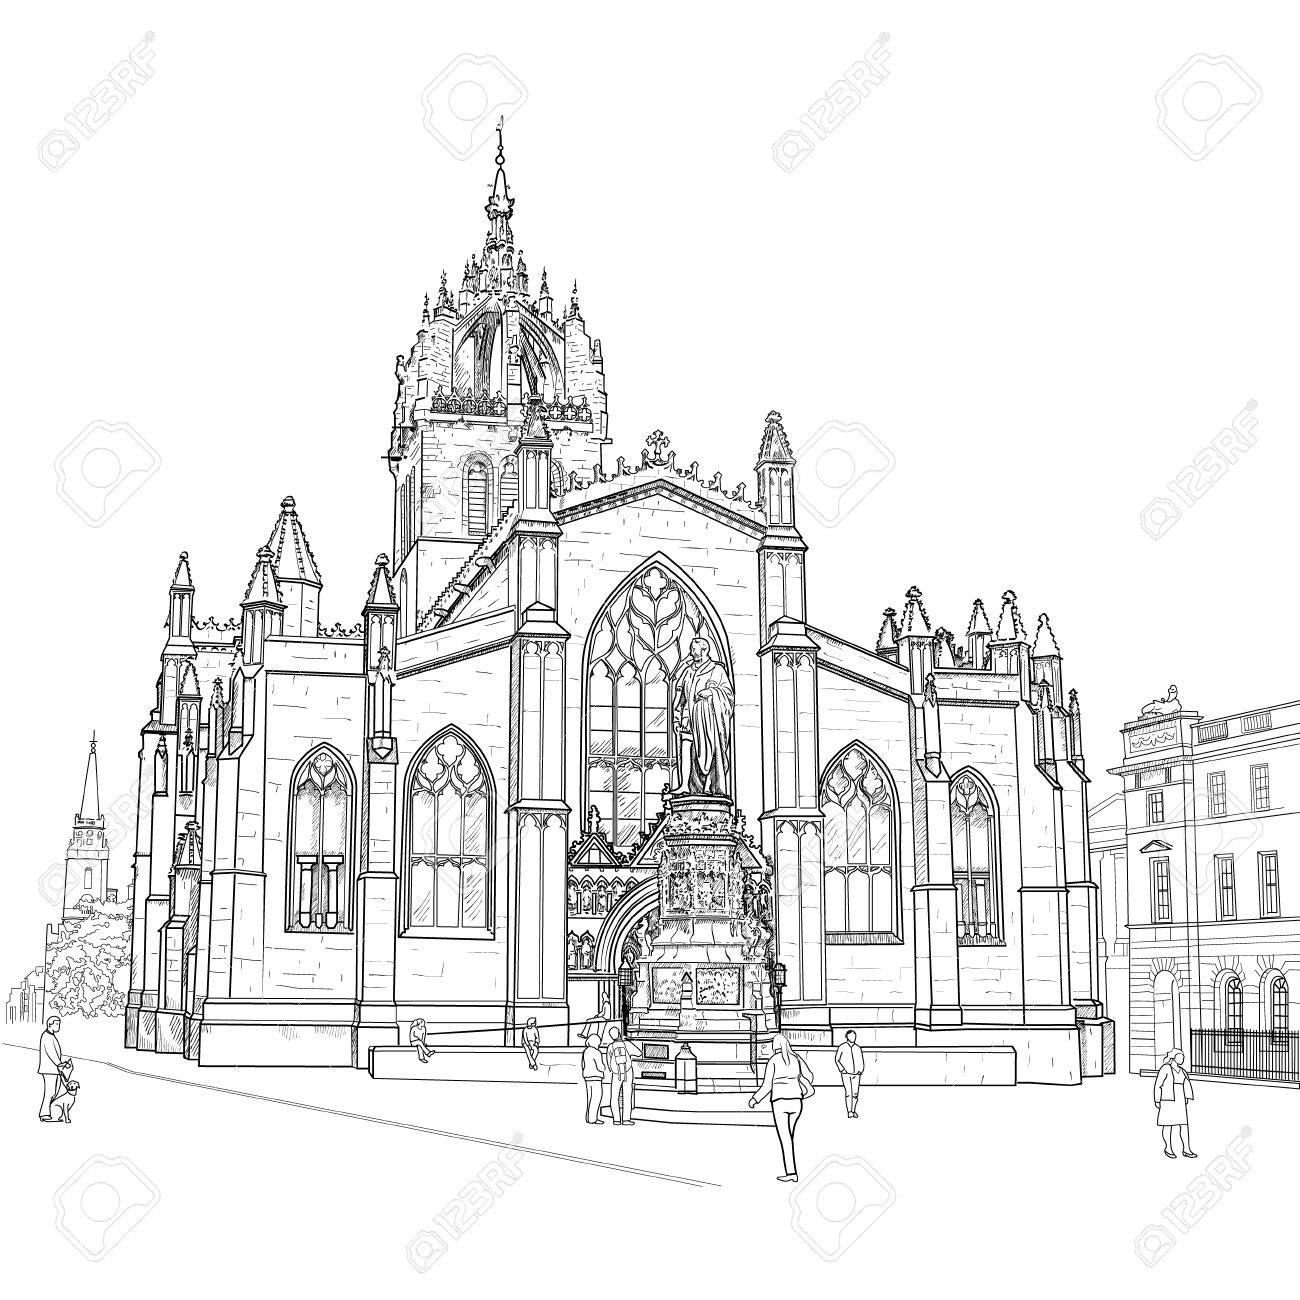 Drawing sv gillis church in edinburgh scotland vector stock vector 58582334